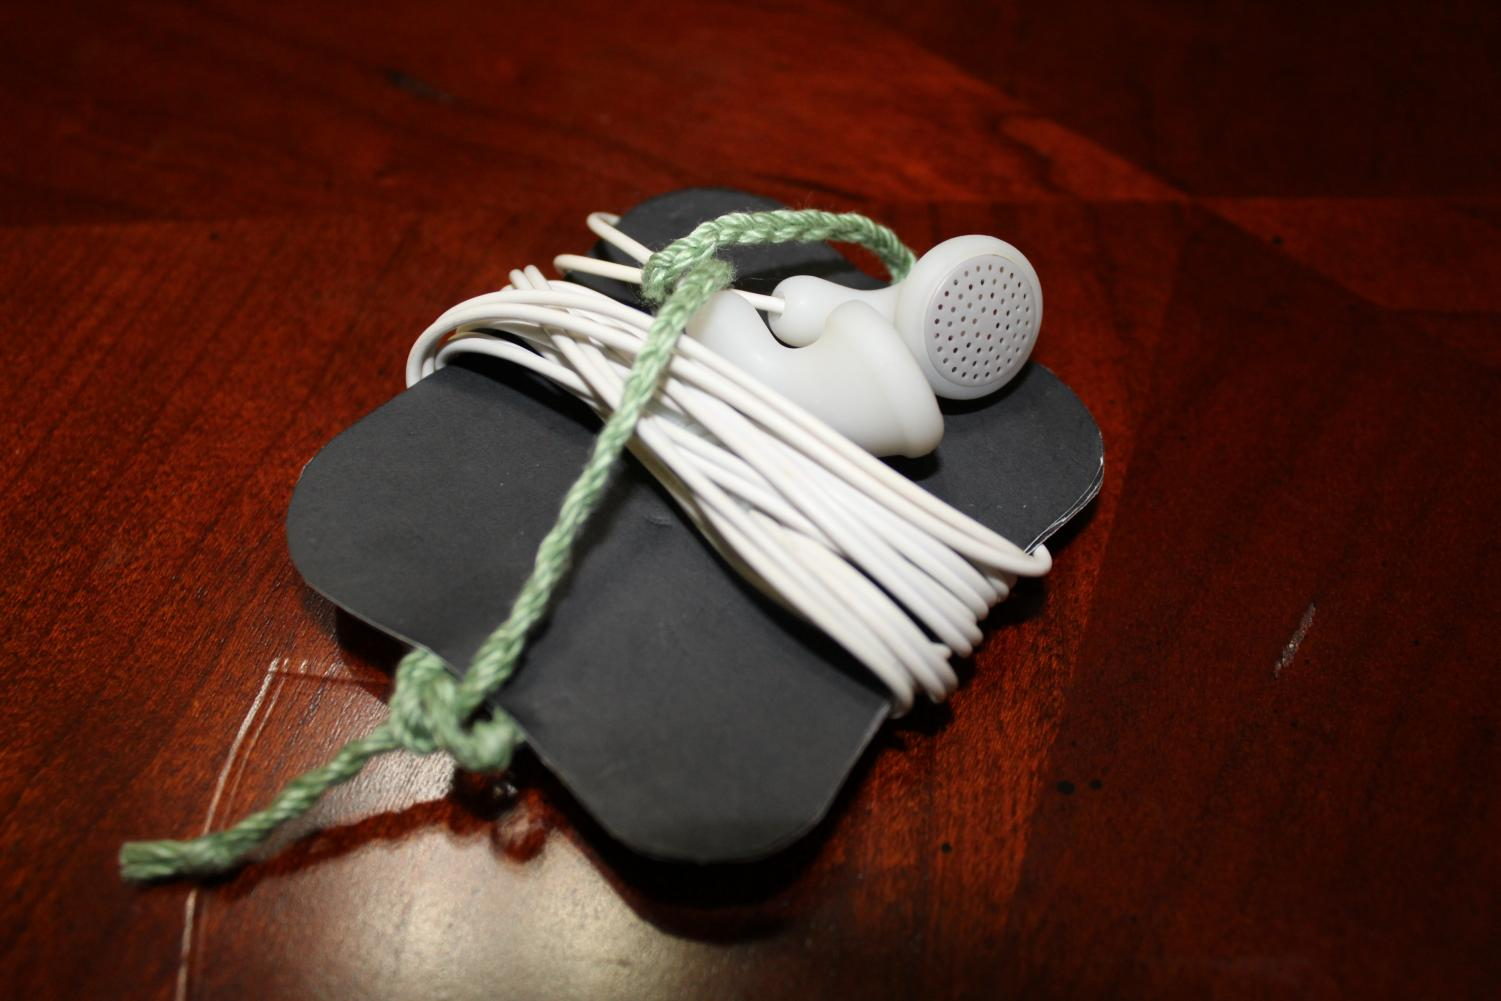 An example of the DIY earbud holder.